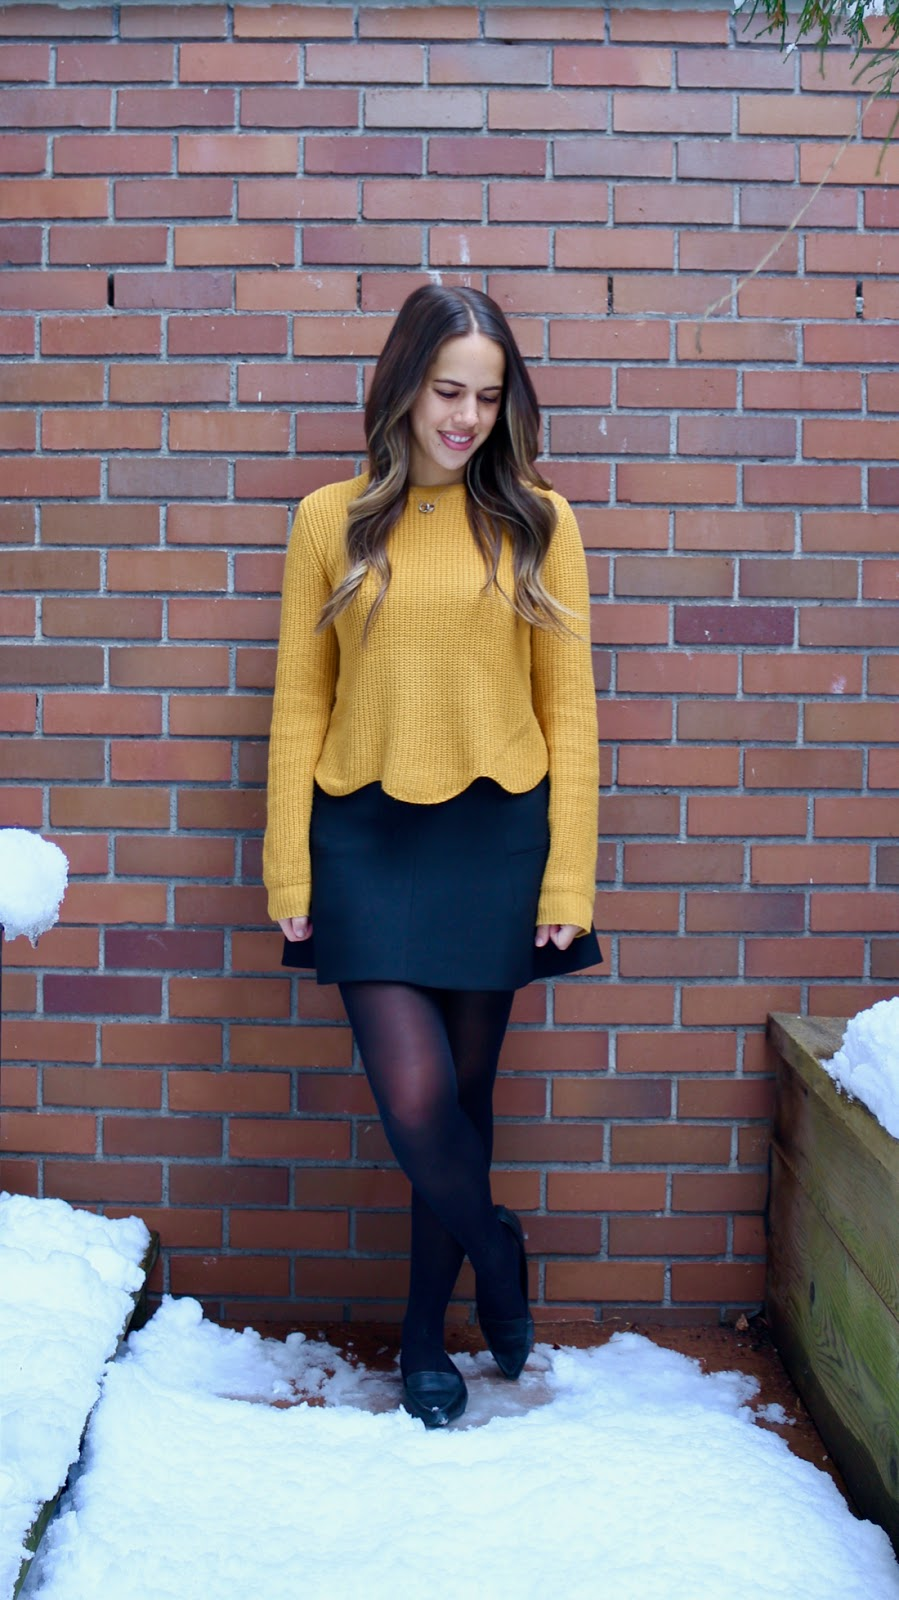 Jules in Flats - Mustard Scalloped Sweater + Mini Skirt (Business Casual Winter Workwear on a Budget)